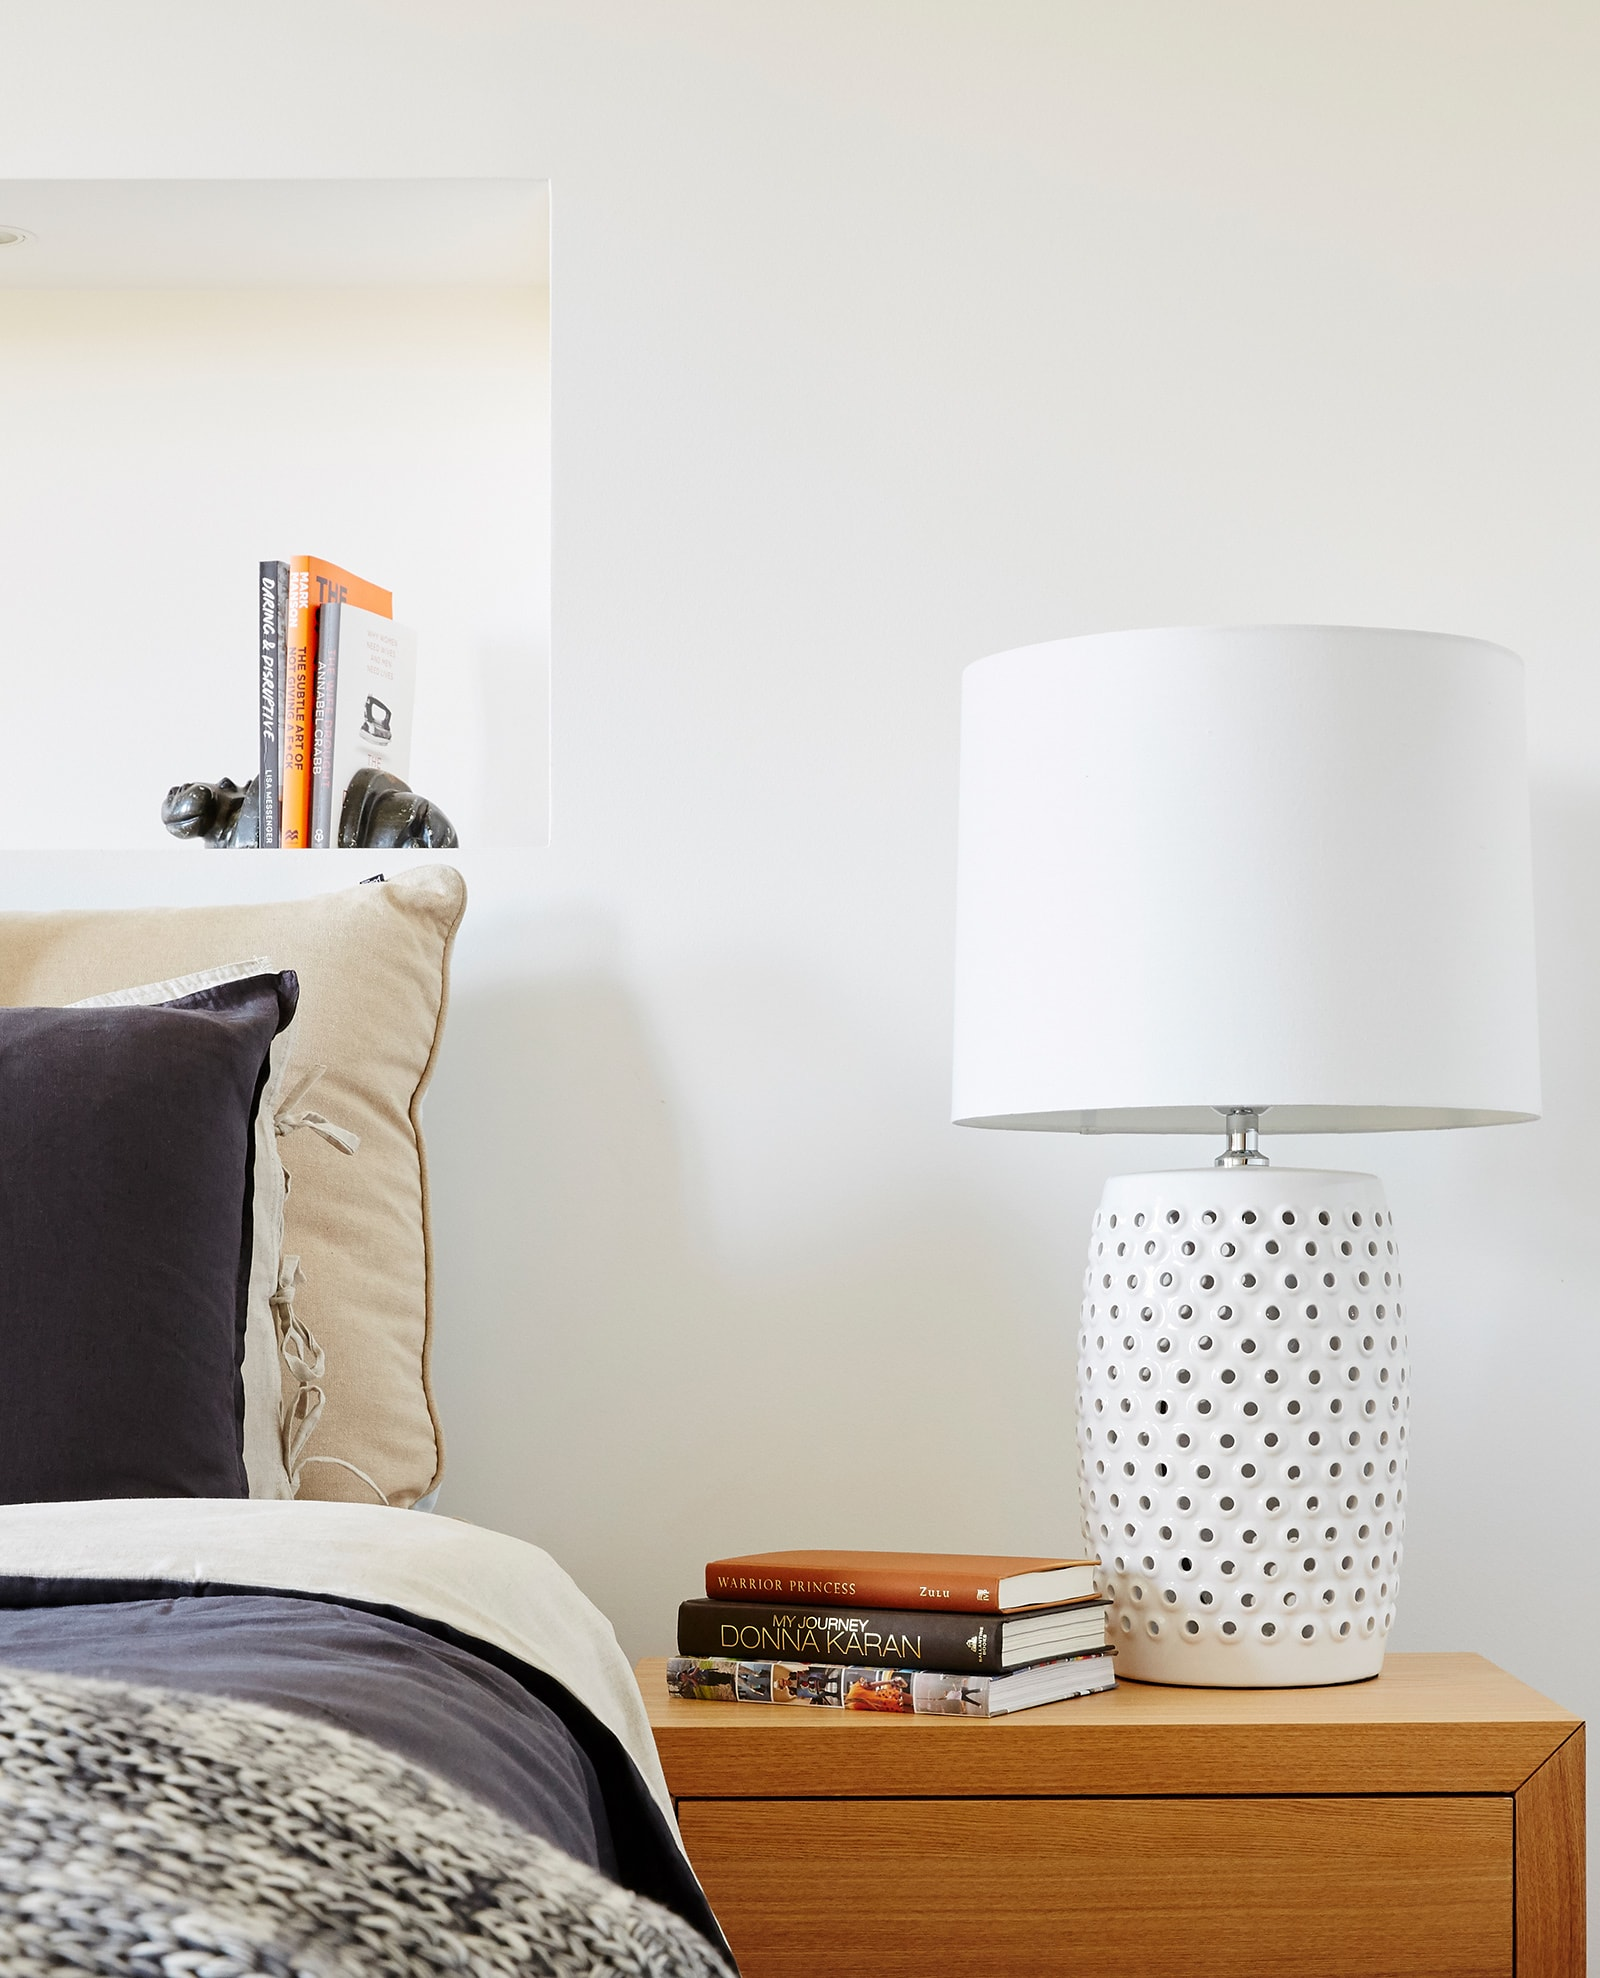 How To Style A Bedroom For Sale In 6 Steps Tlc Interiors